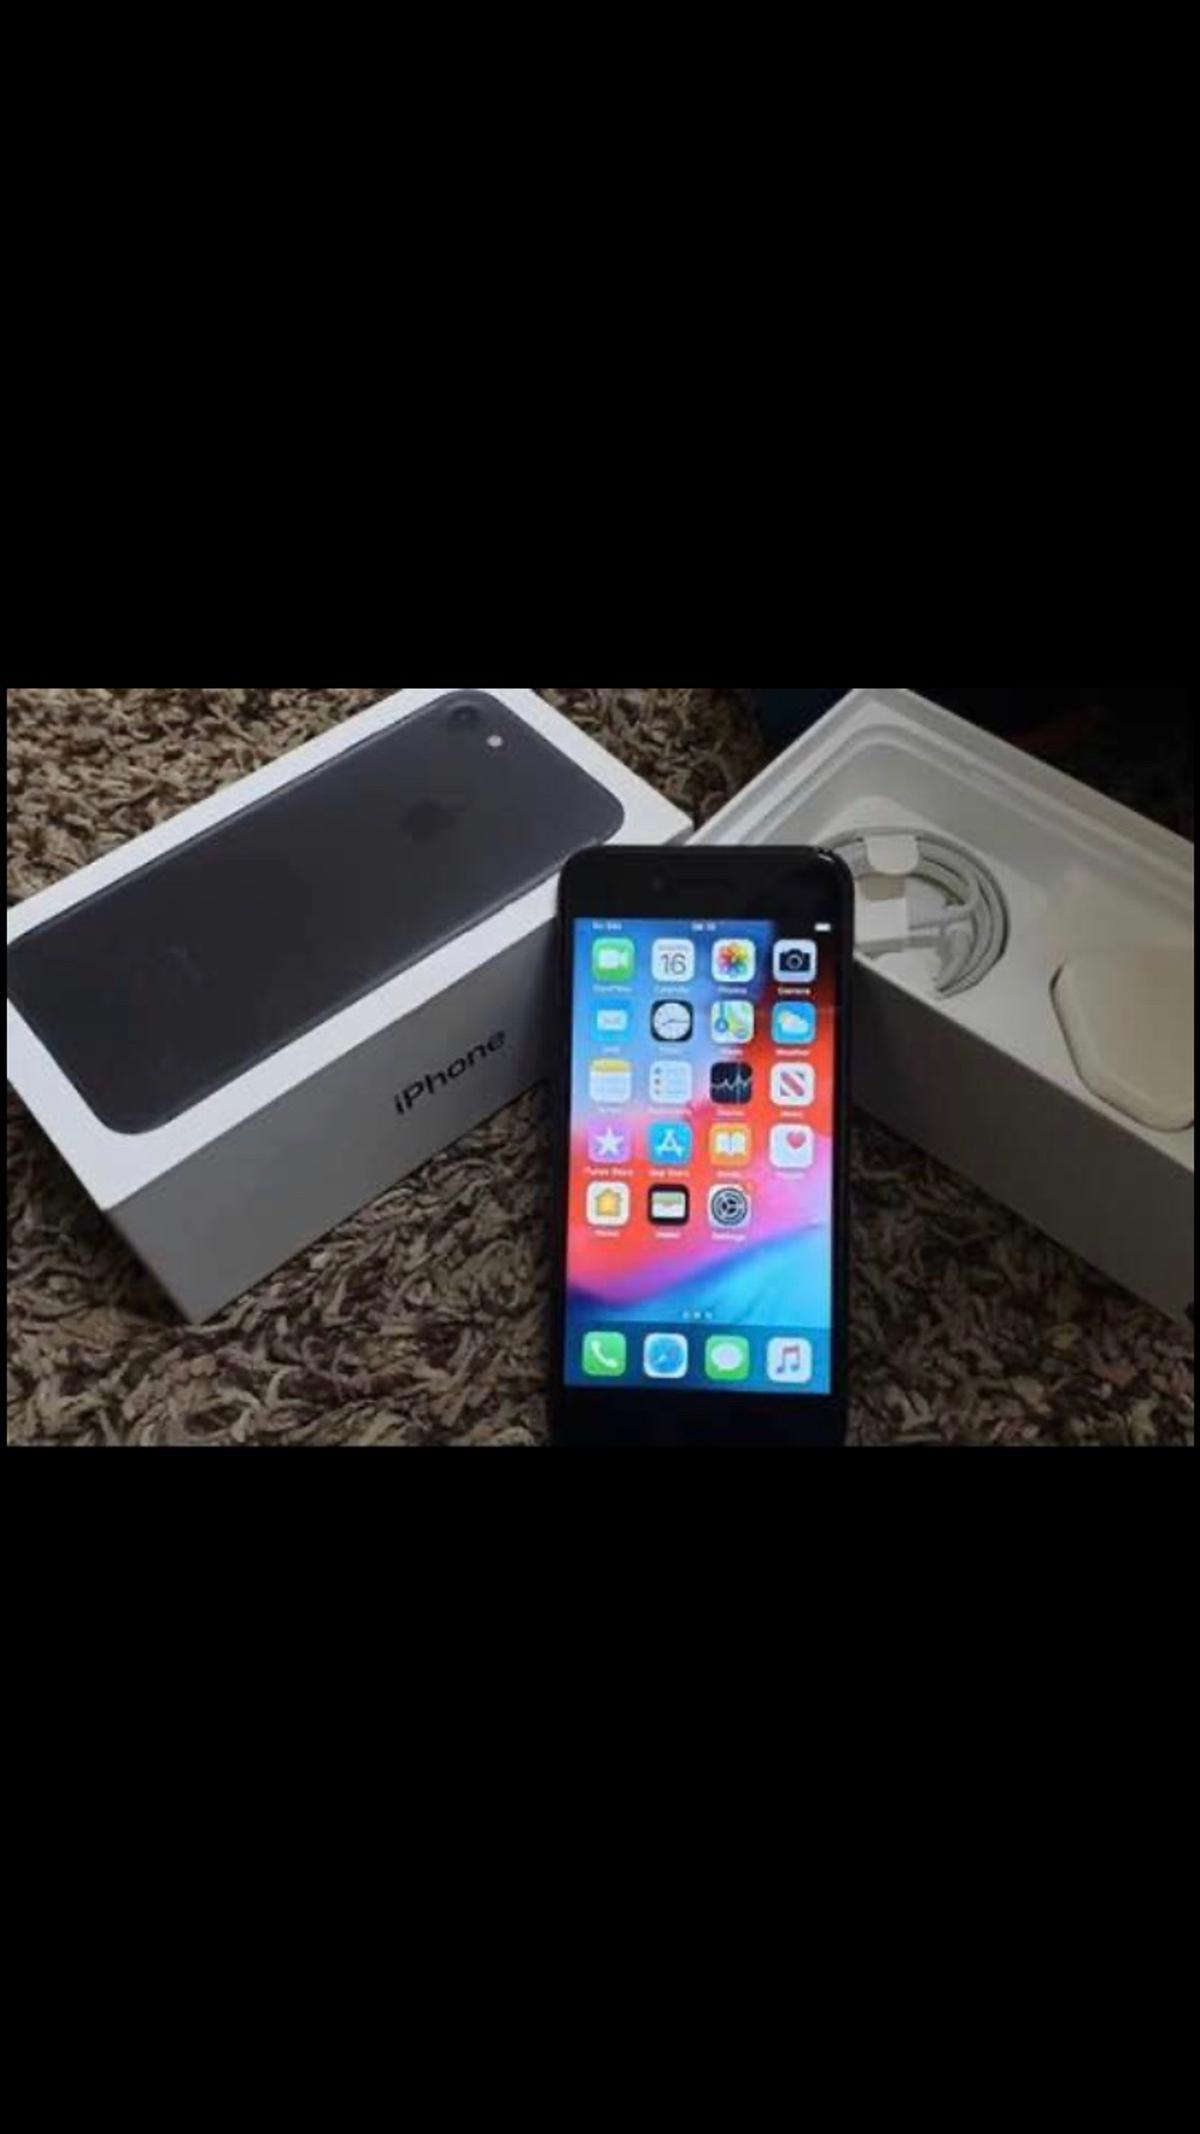 iPhone 7 - Matt Black  V Good Condition  Comes with original box.  Only 1 year old well looked after